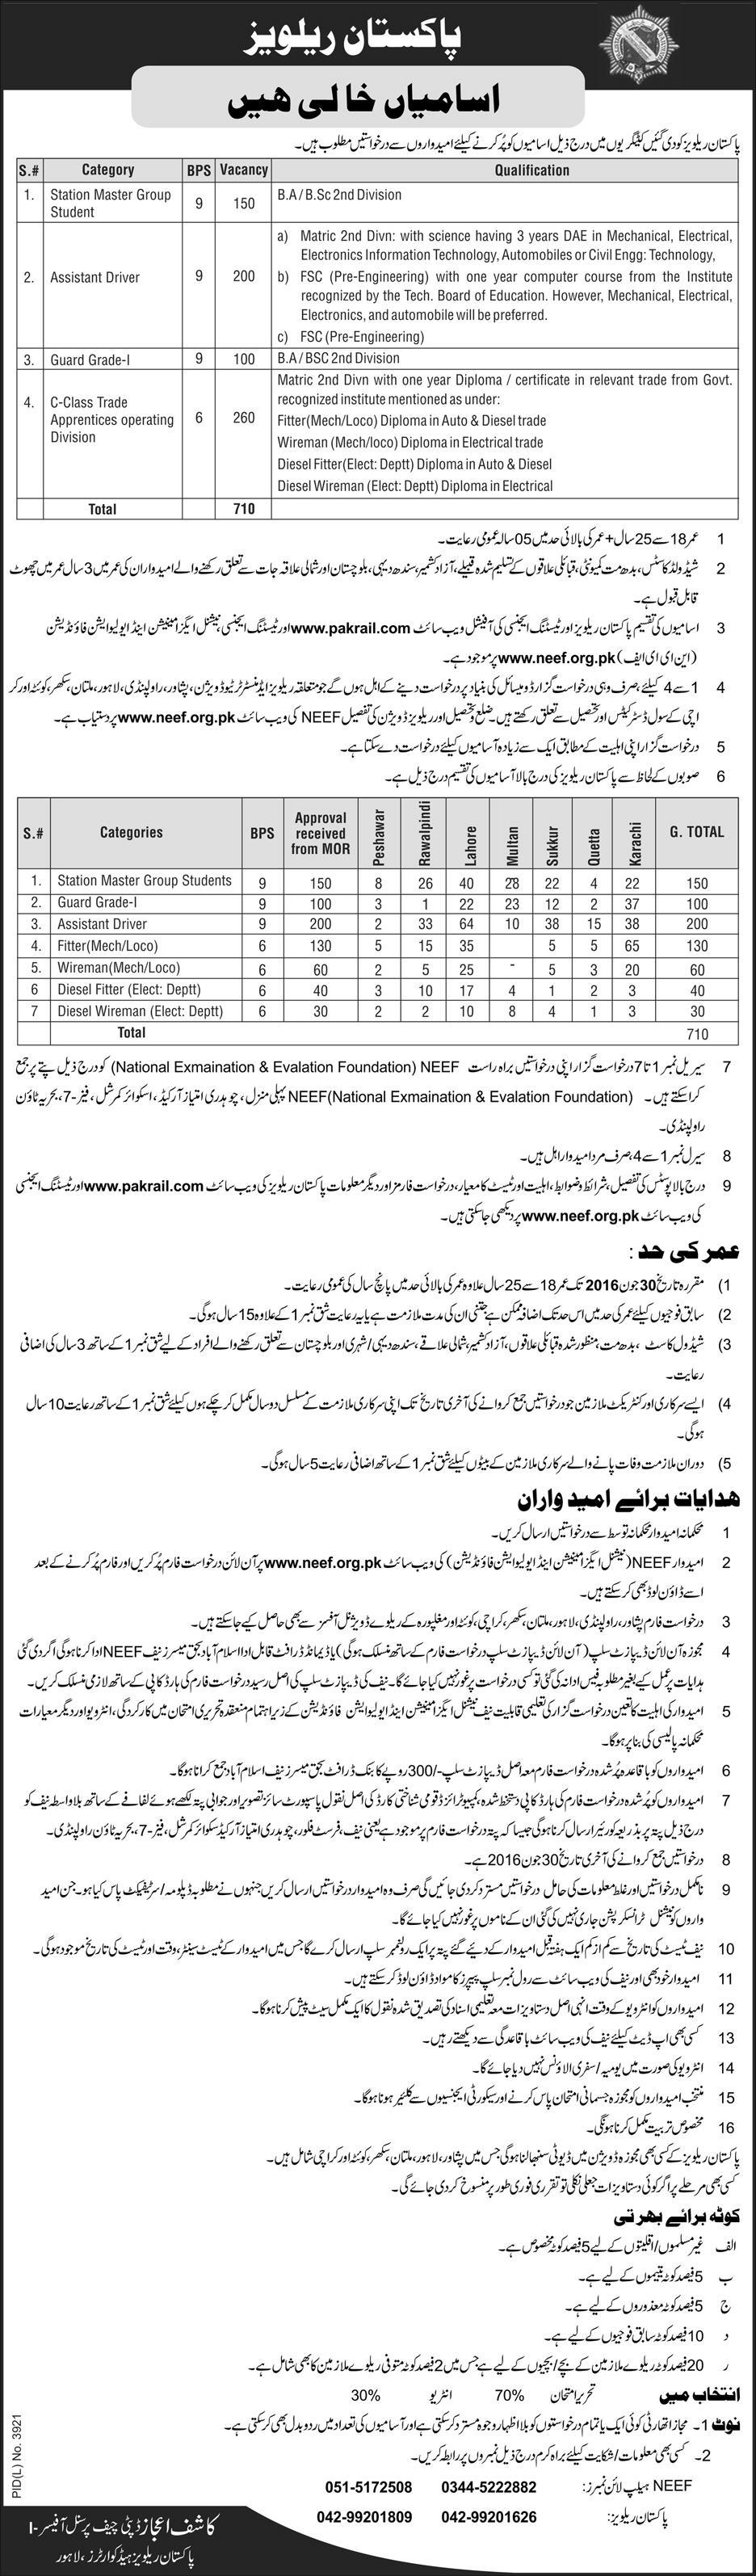 Pakistan Railway Jobs 2016